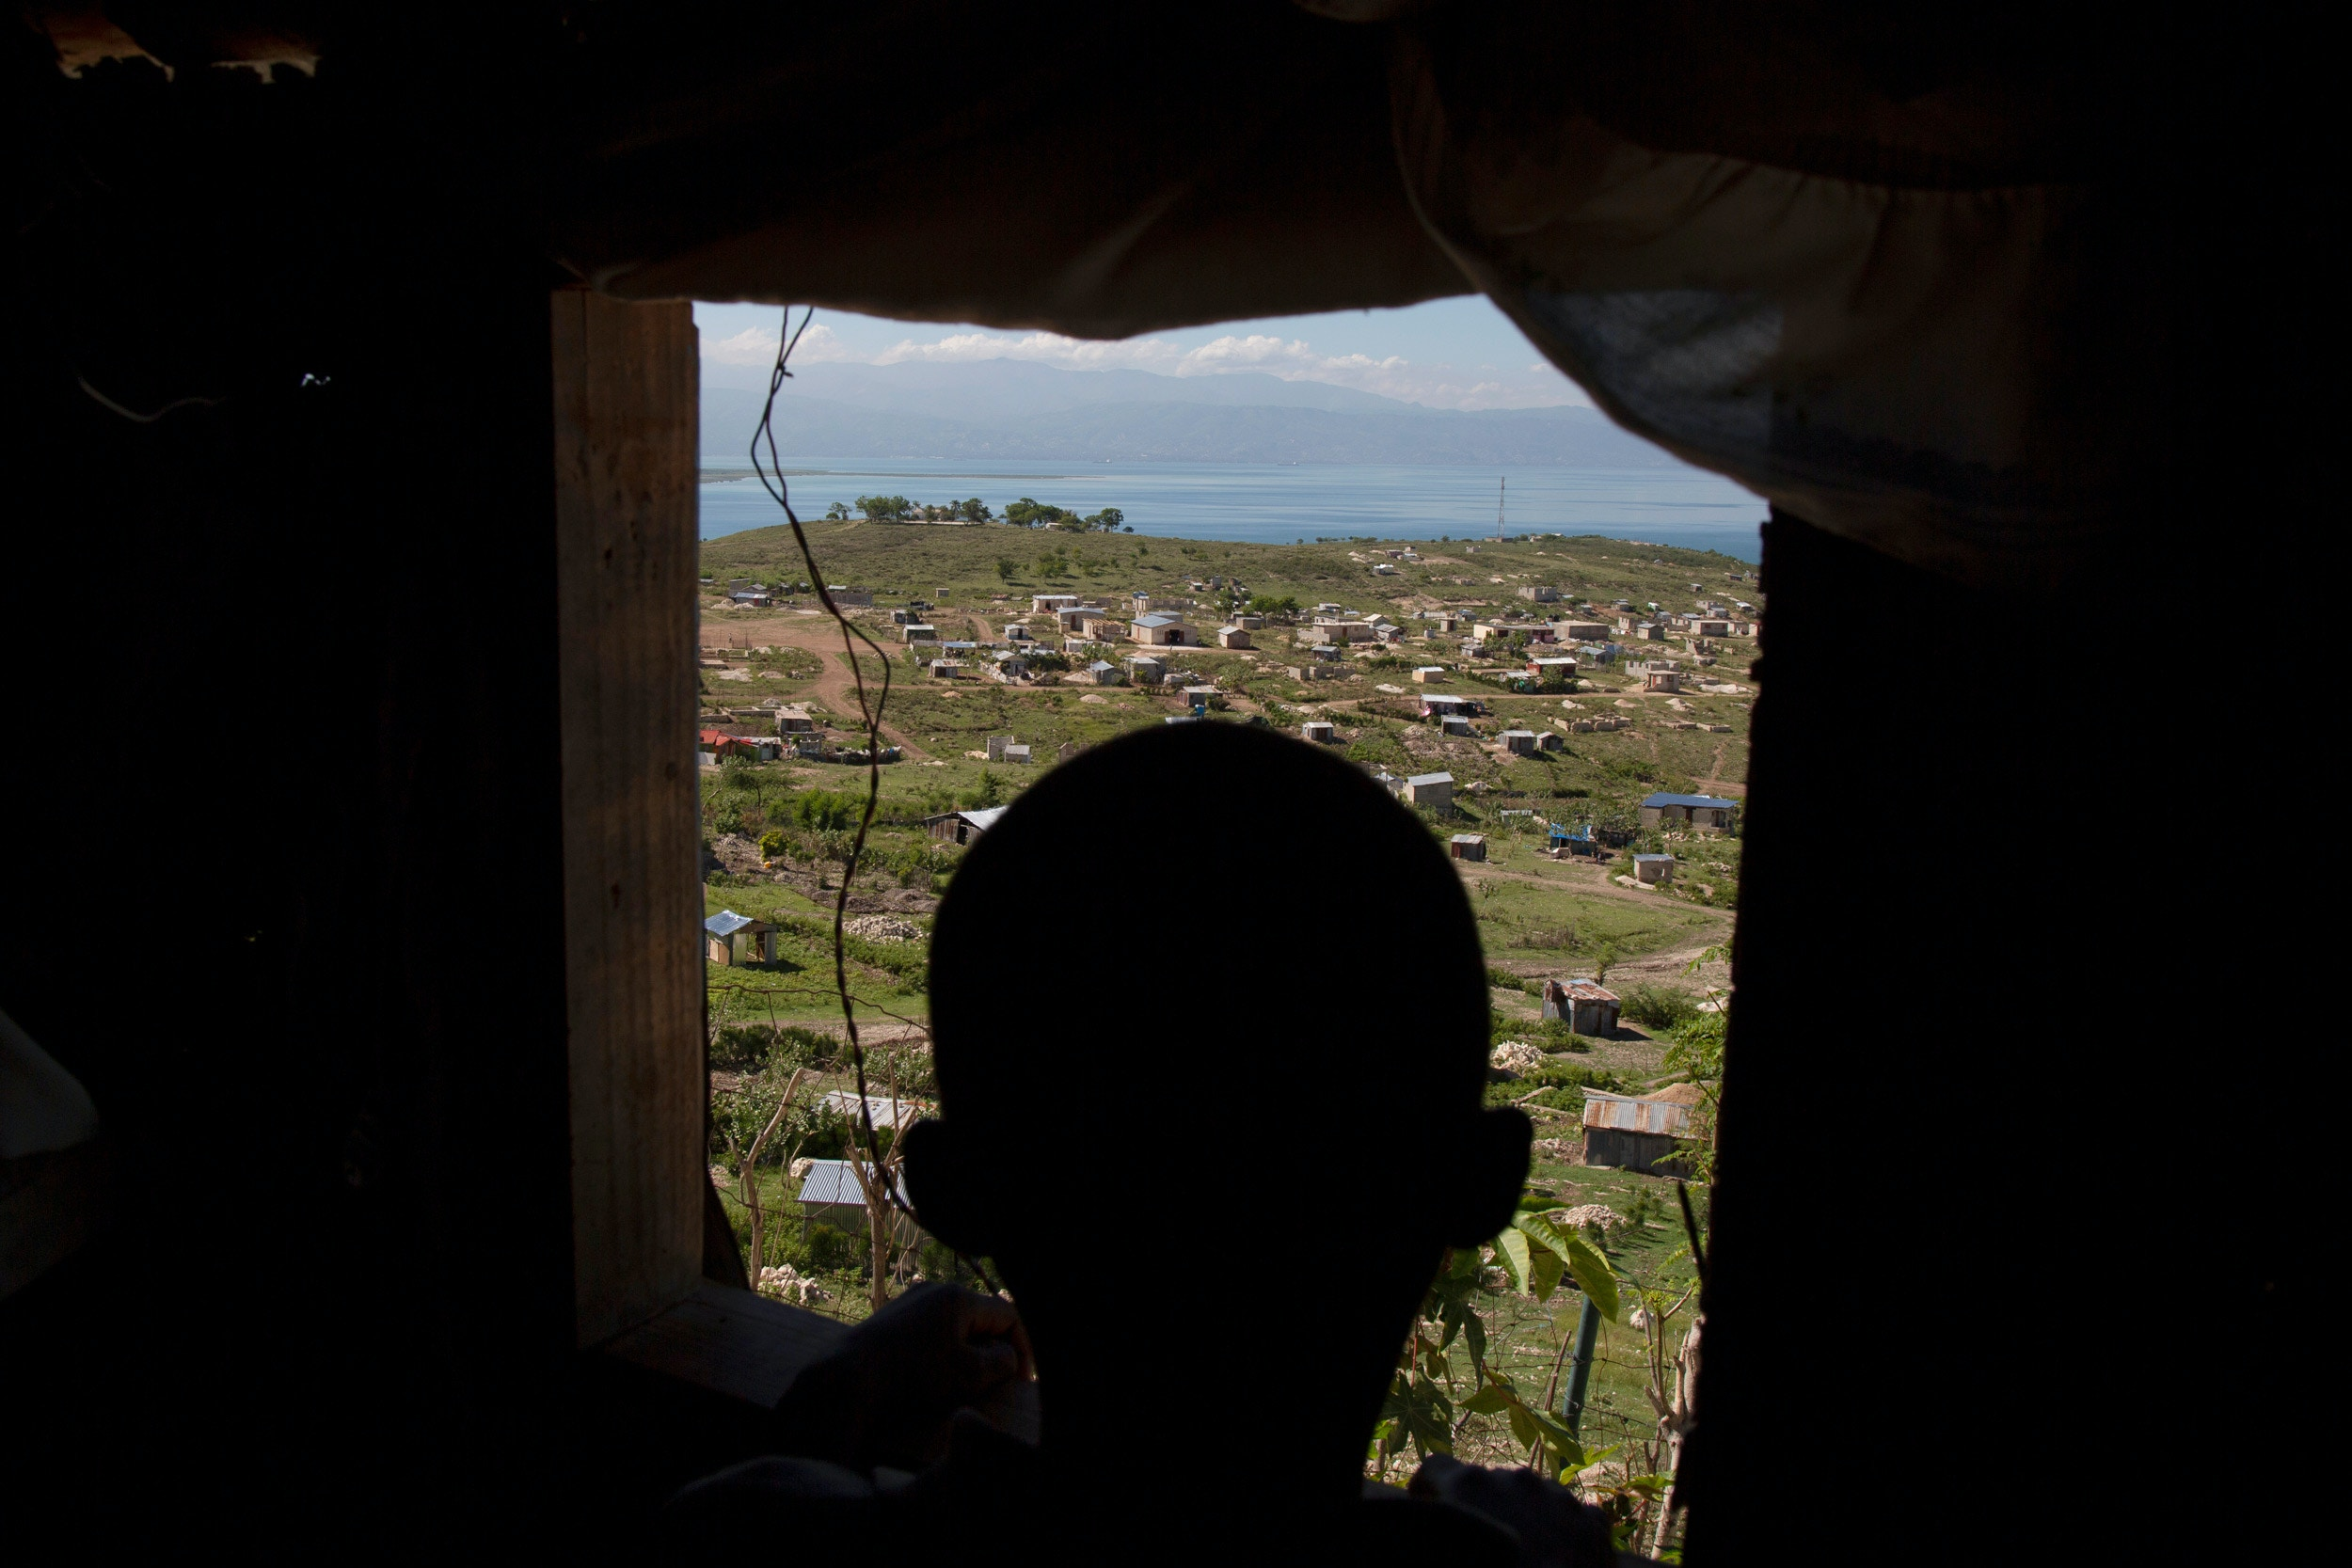 A view of Village Philadelphie, a community on the outskirts of Port-au-Prince.